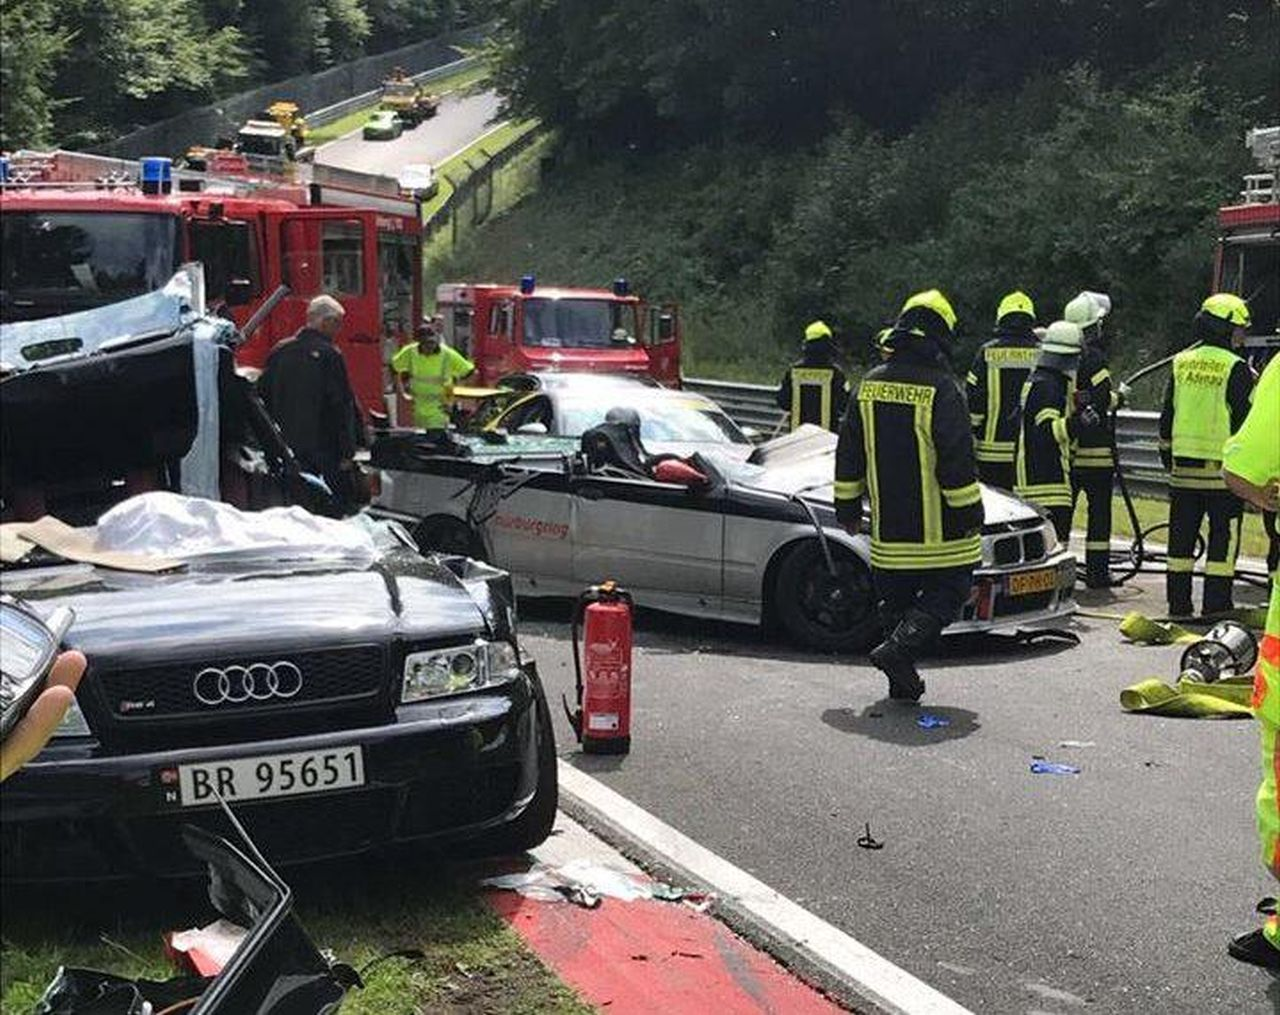 Nurburgring crash august 2017 (8)